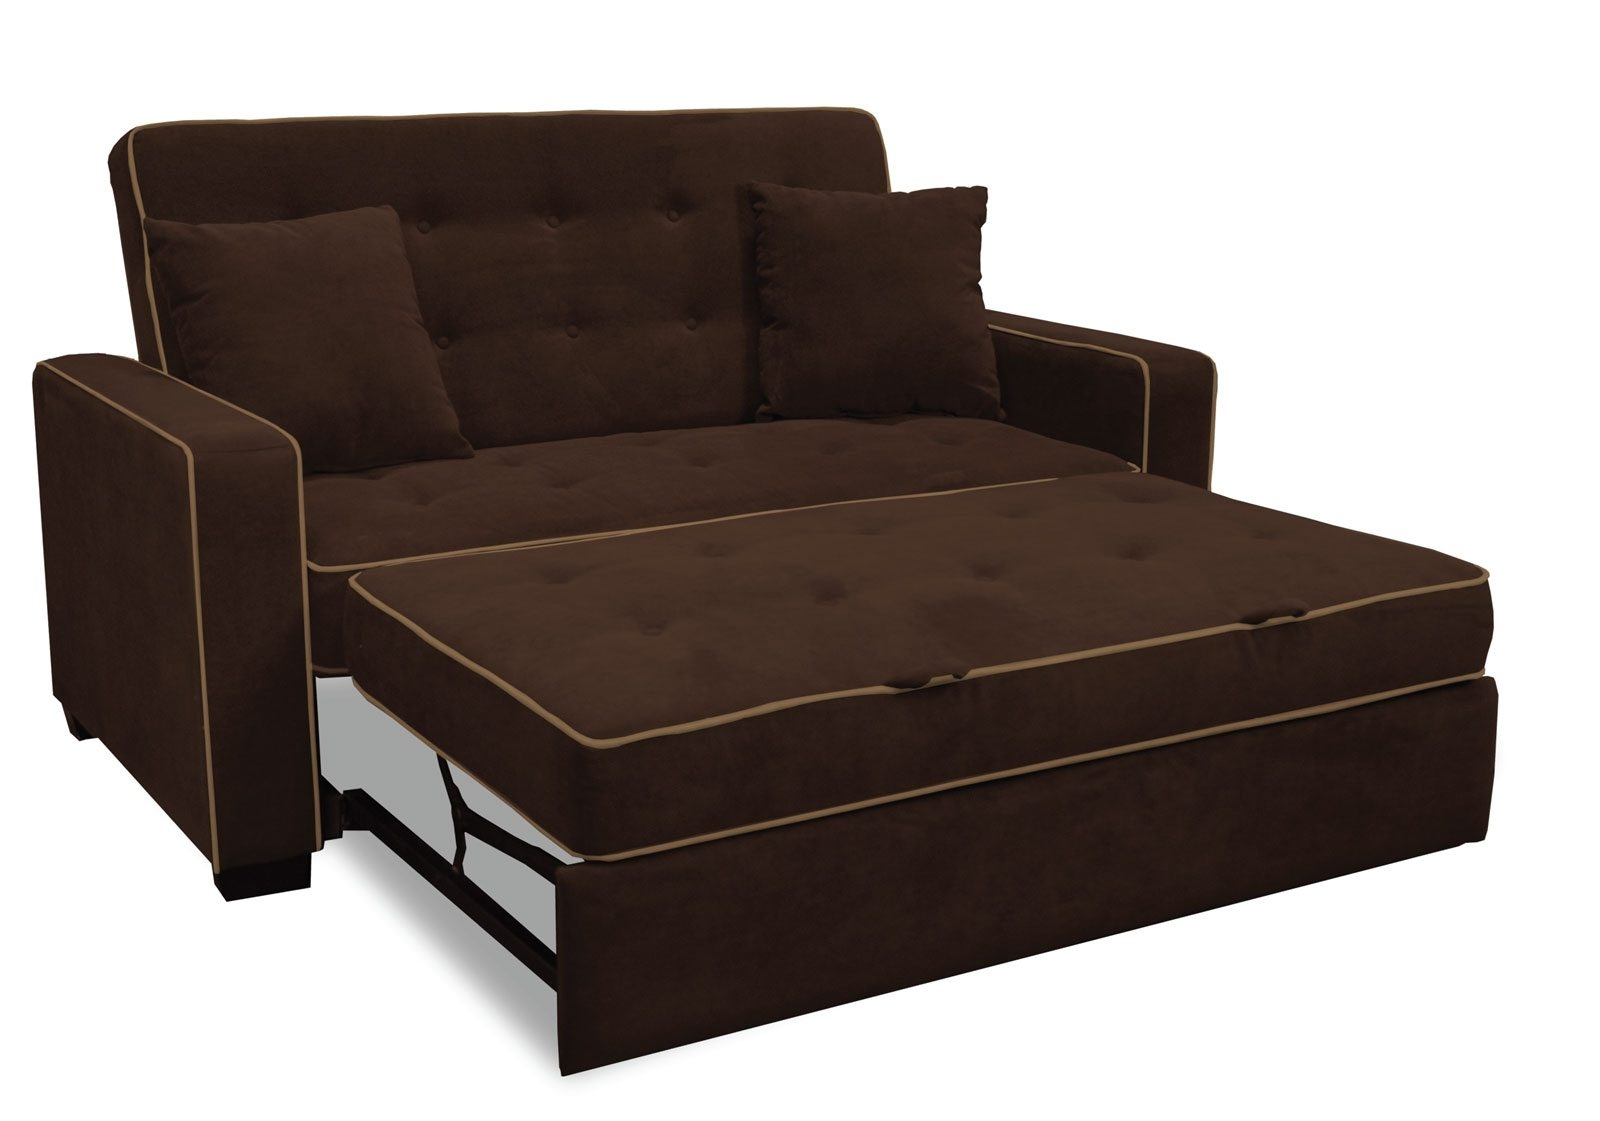 Loveseat Sleeper | Queen Sleeper Sofa | Futon Couches